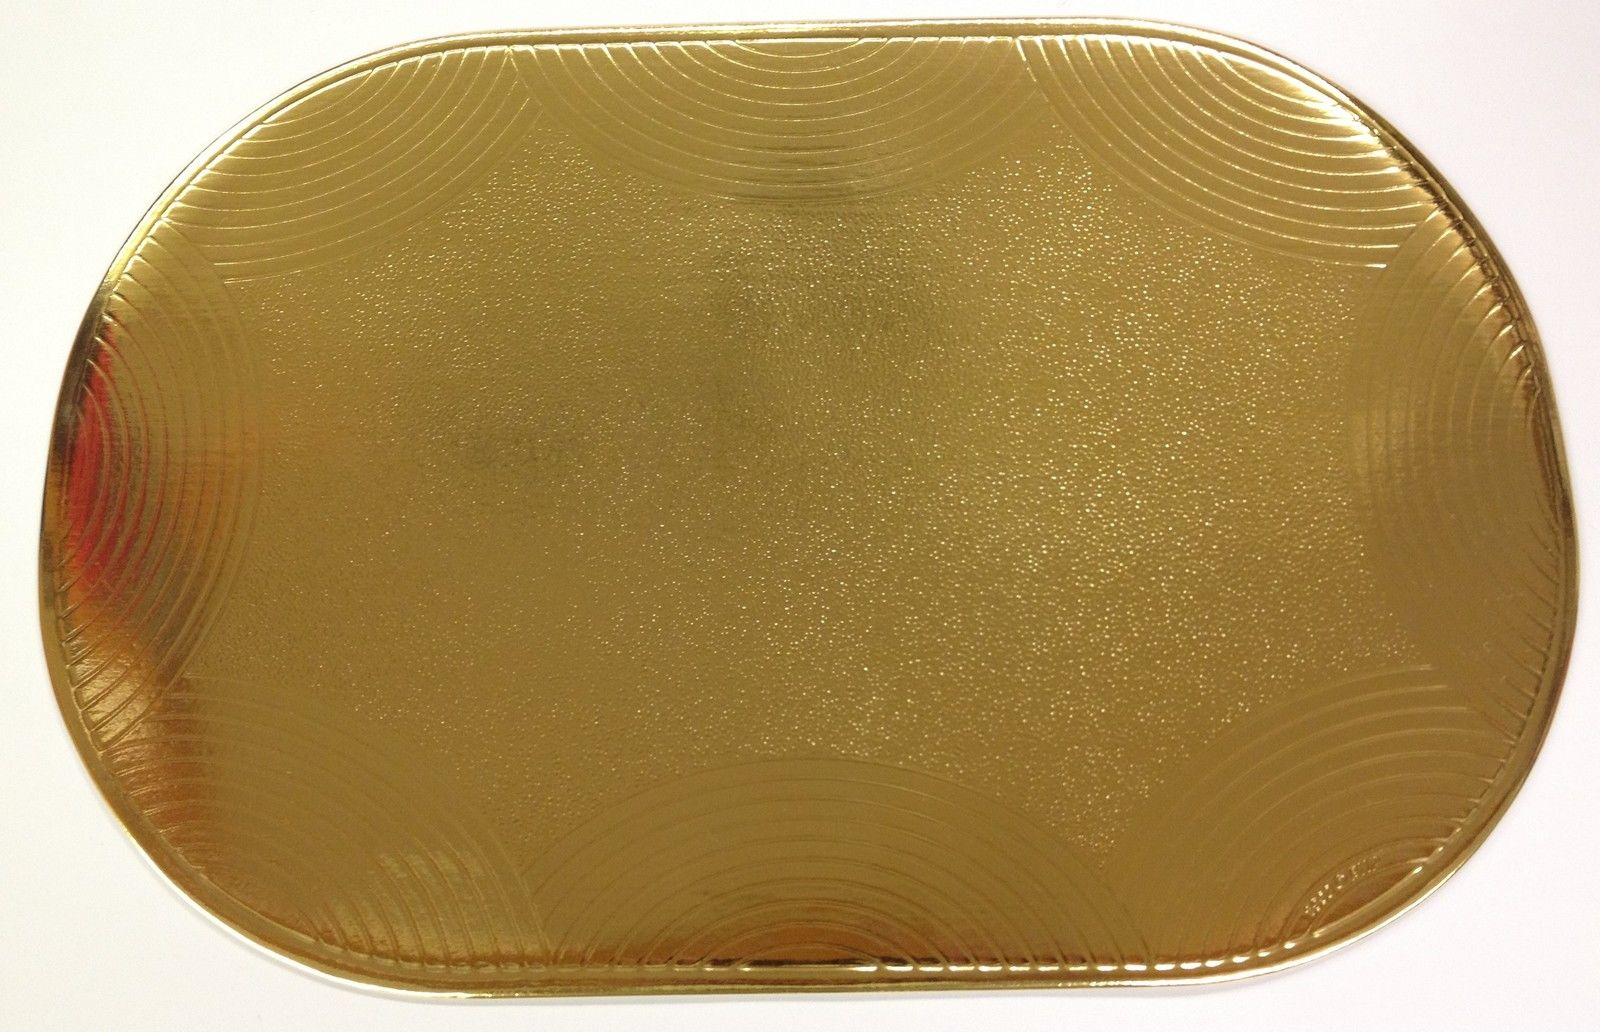 Set Of 6 Mylar Gold Placemats Metallic Look Oval Shape